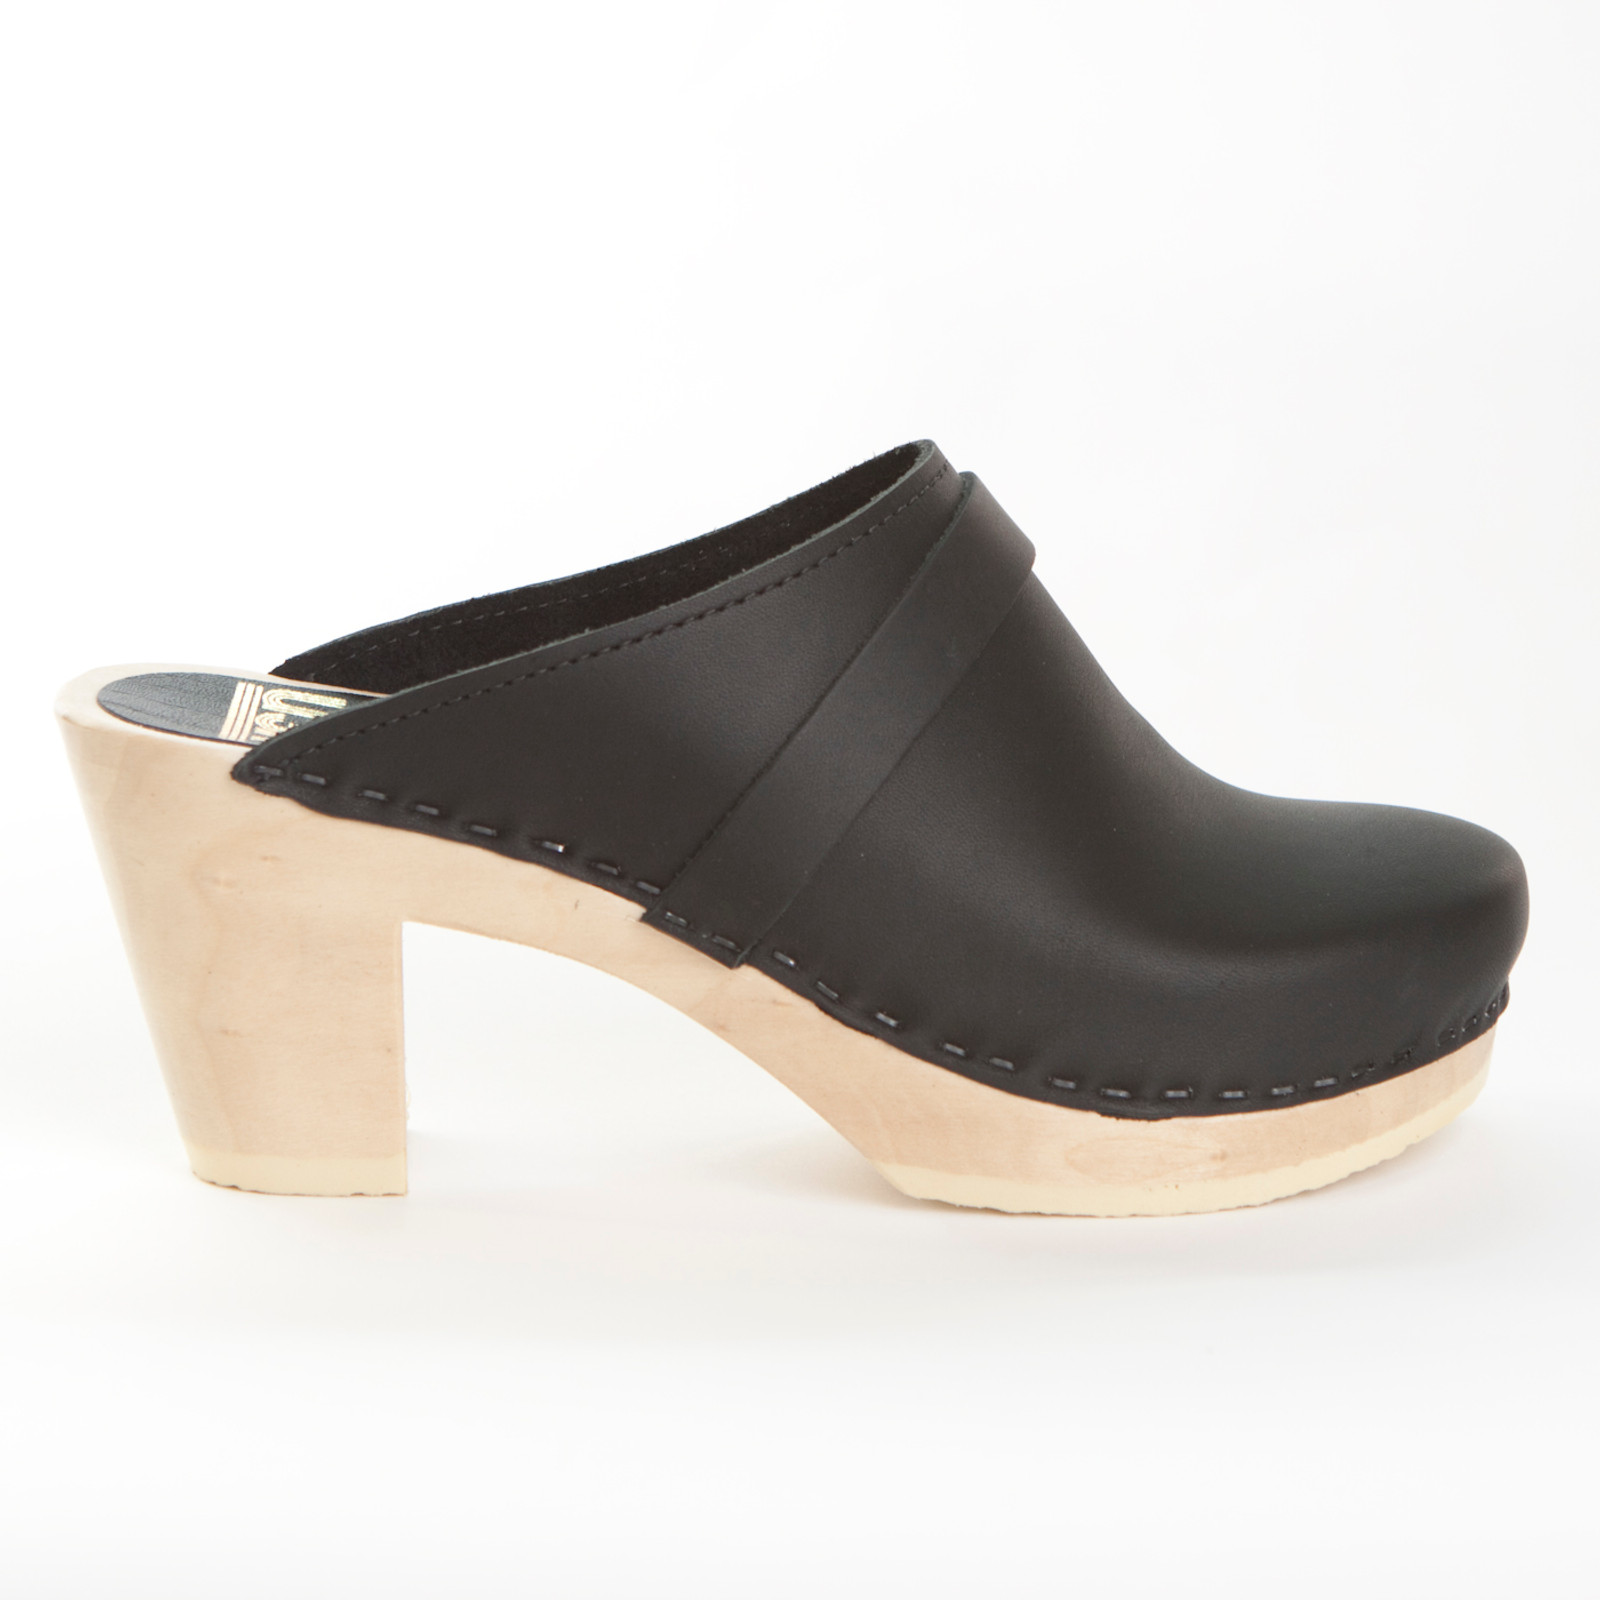 Plain Clogs with Strap - High Heels